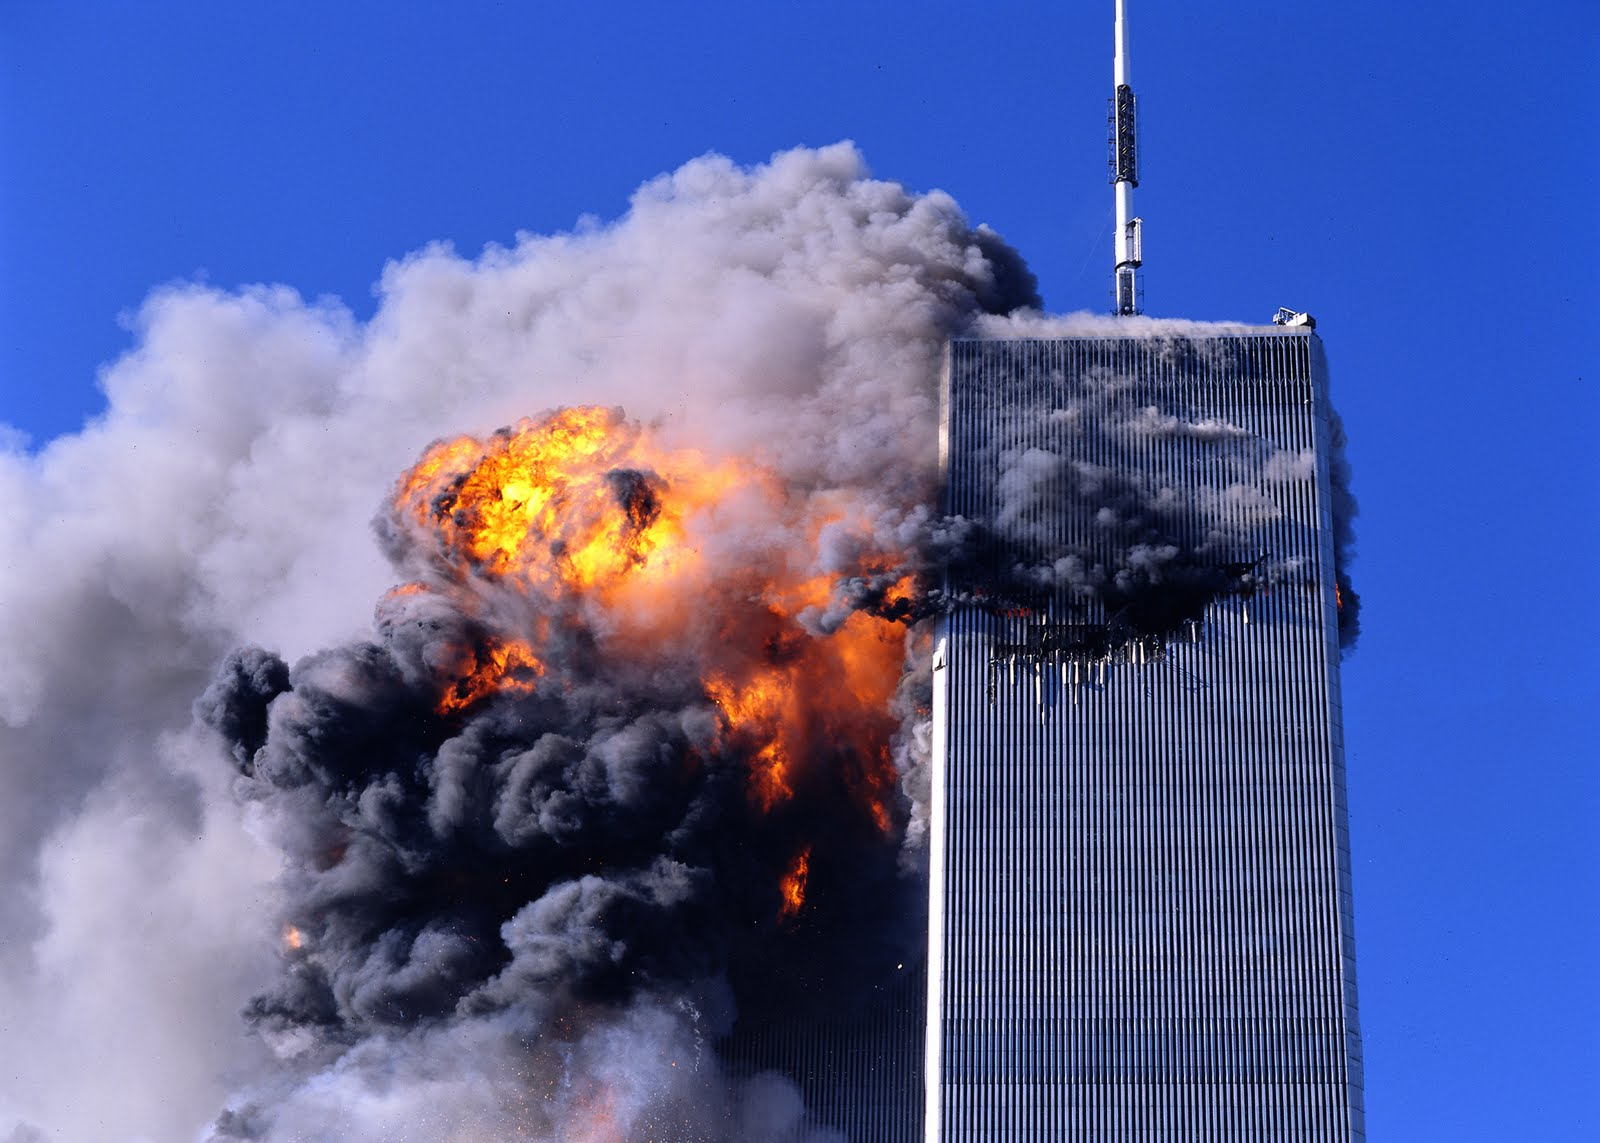 Archive photos - South Tower explosion